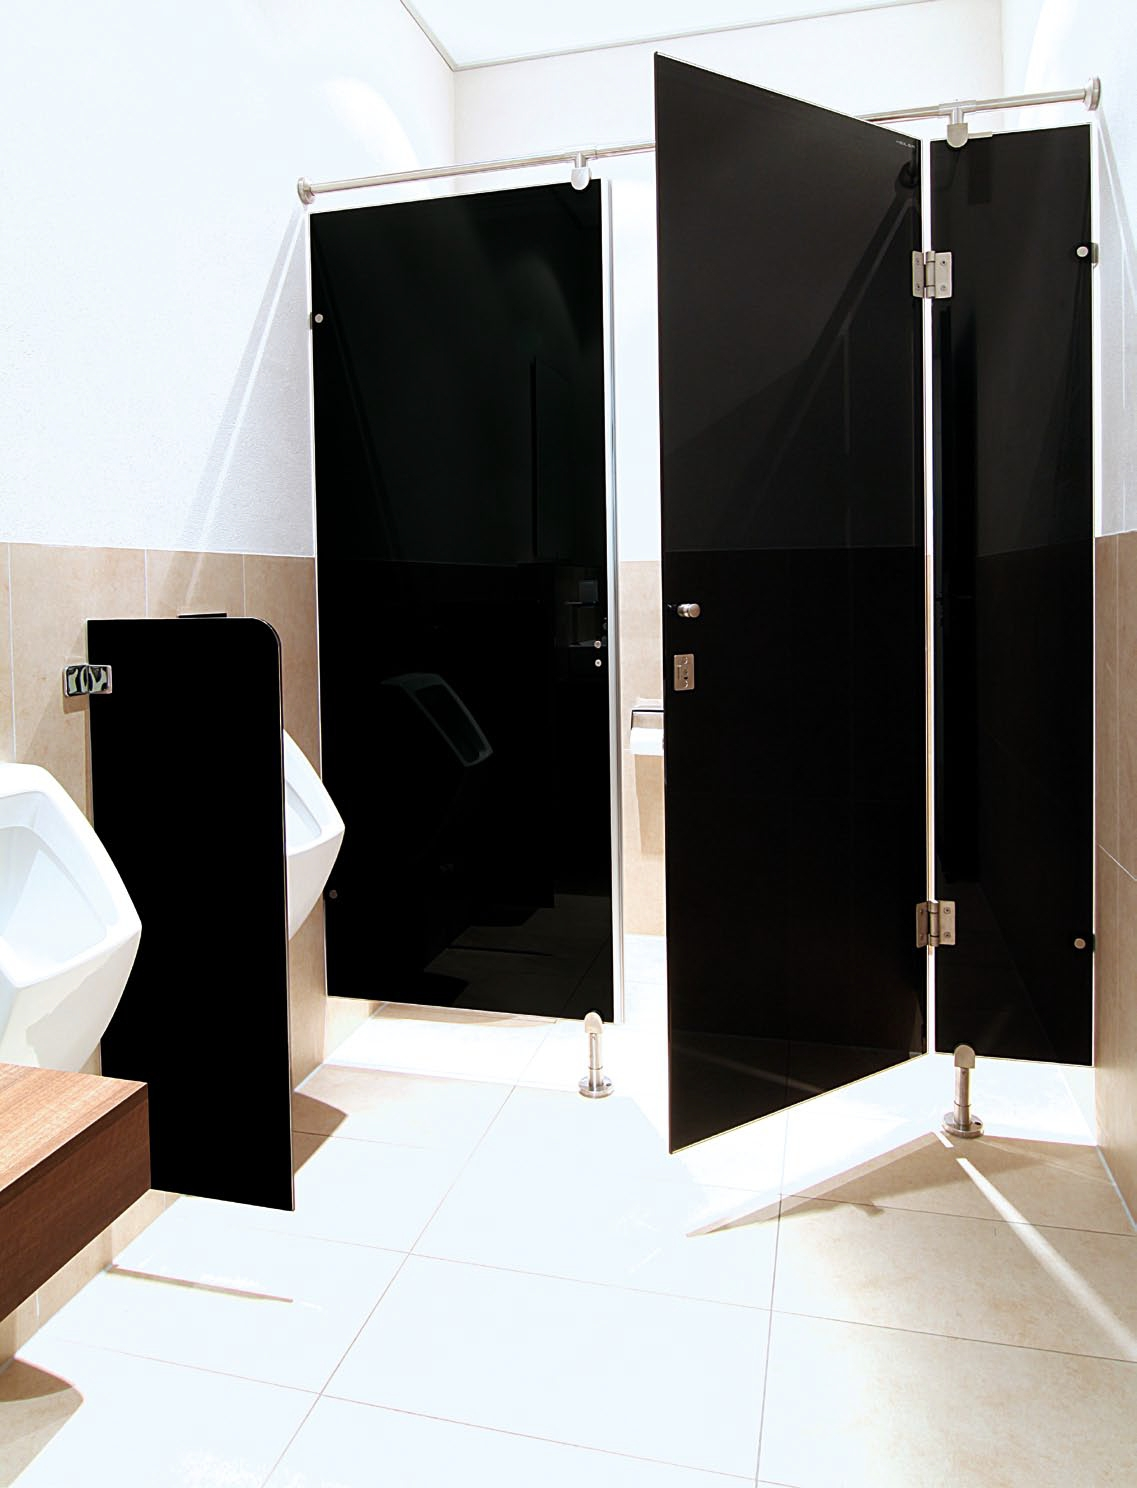 heiler glas trennwandsysteme rahmenlose wc trennw nde urinal trennw nde ais. Black Bedroom Furniture Sets. Home Design Ideas